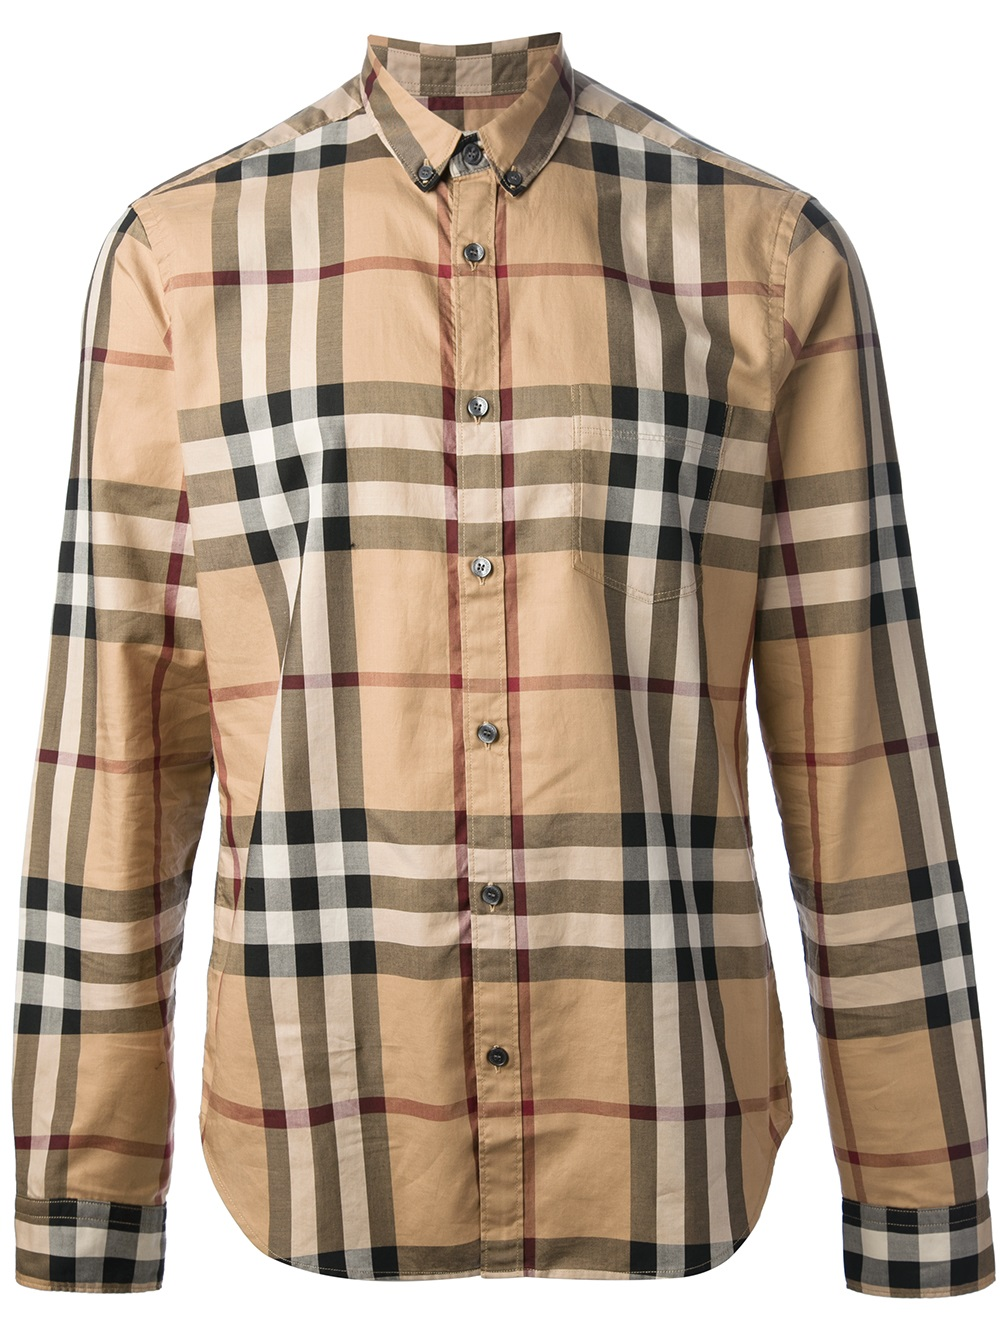 Burberry brit checked shirt in natural for men lyst for Burberry brit checked shirt